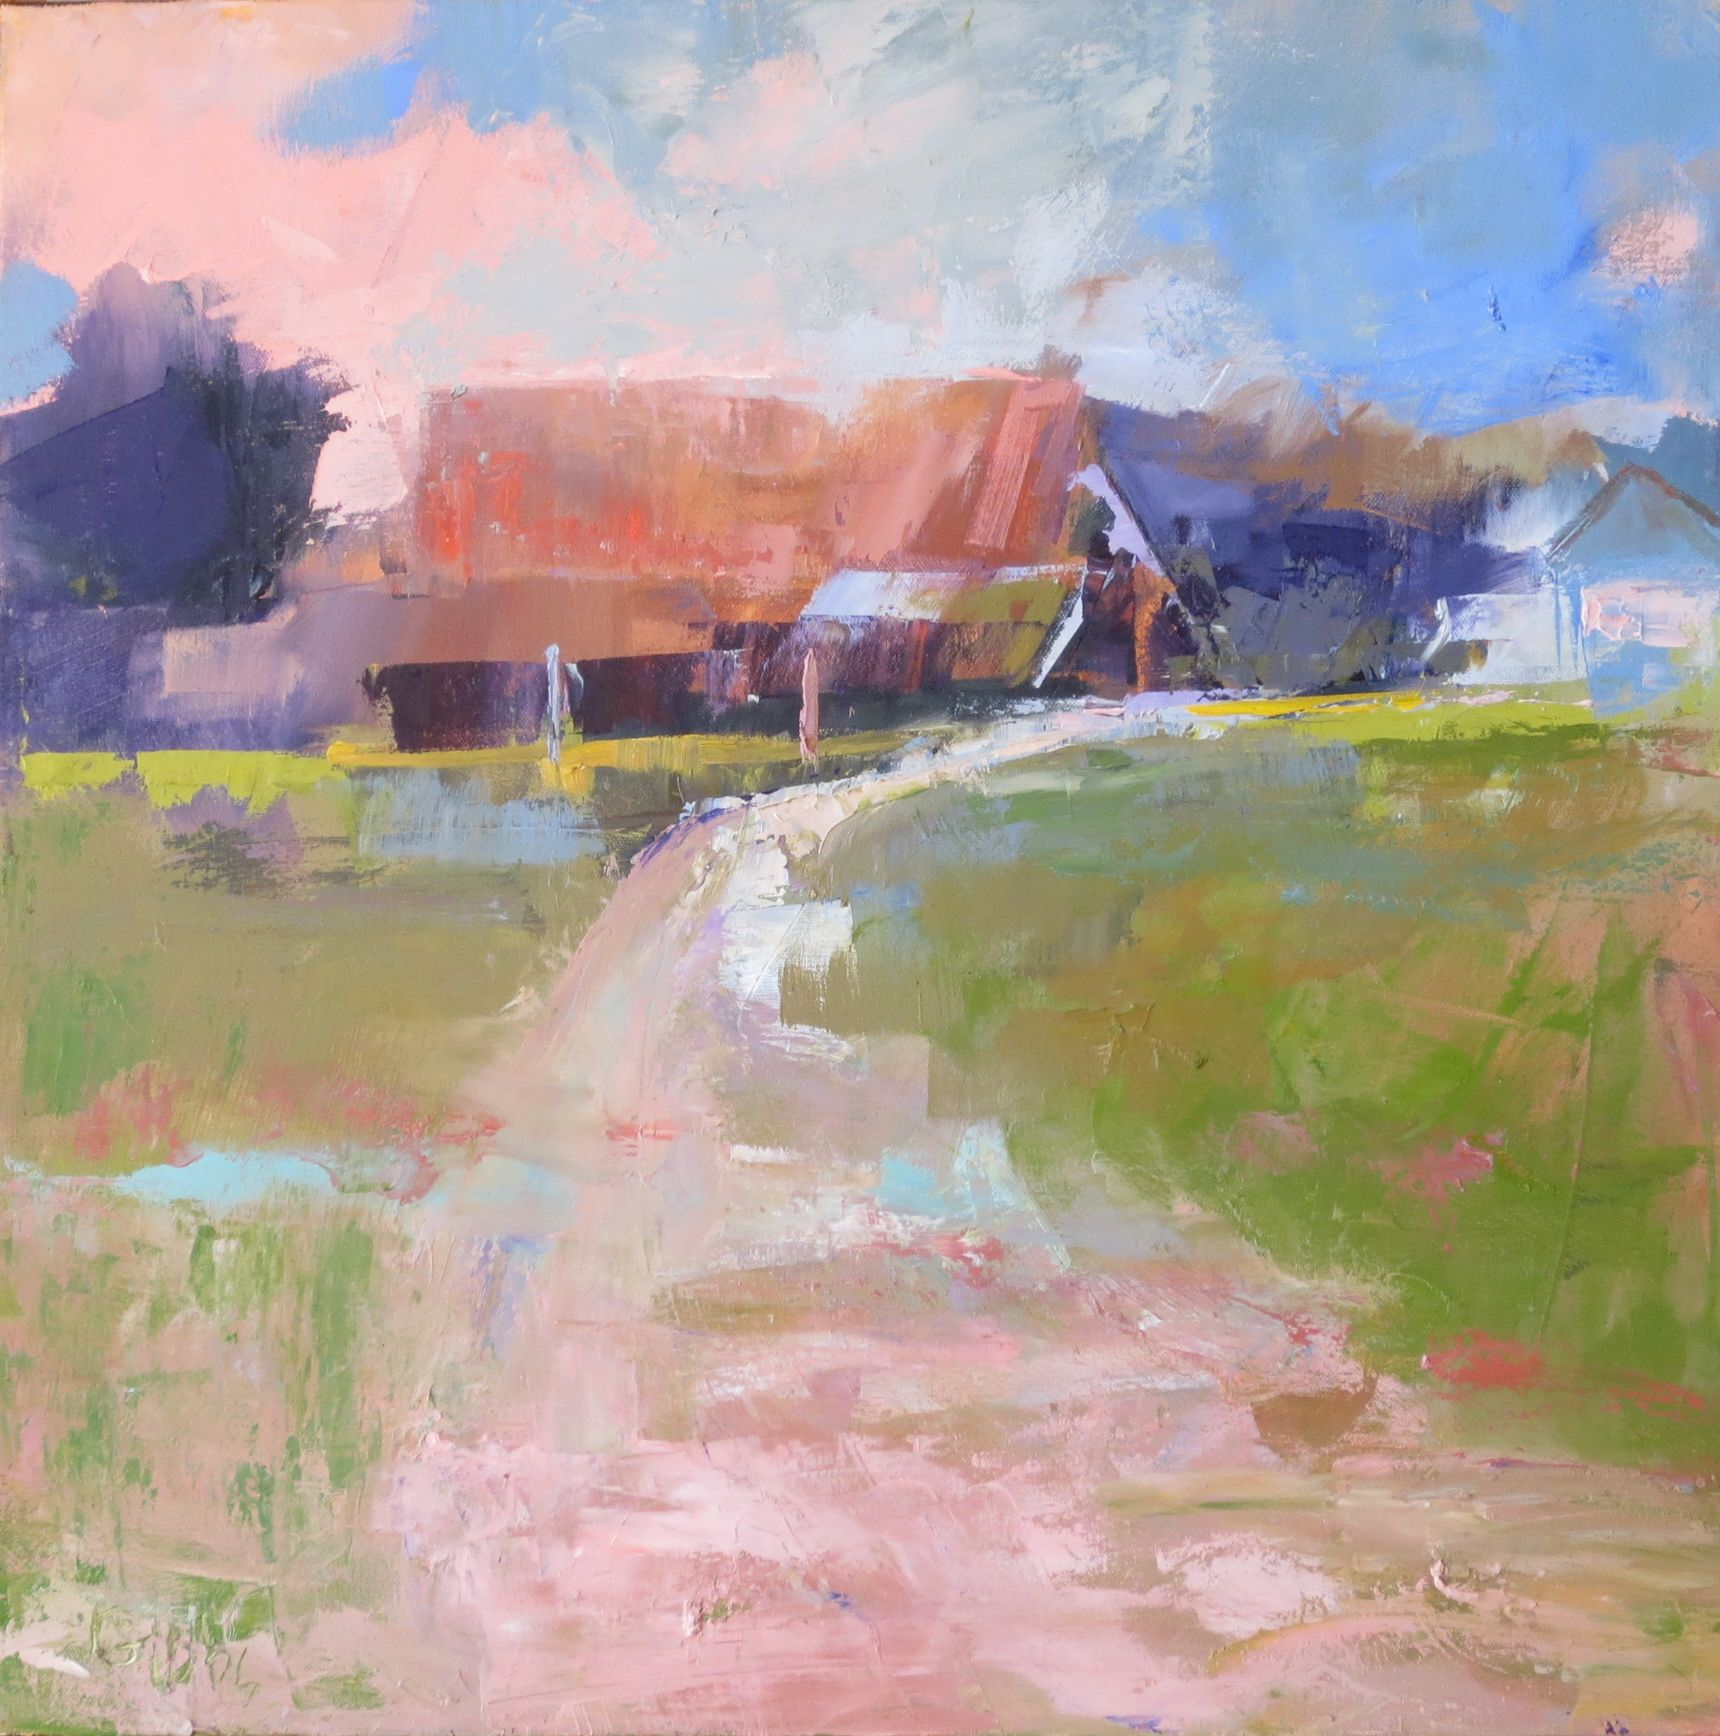 """Stowers Barn 1"", Oil on Canvas, 24x24"